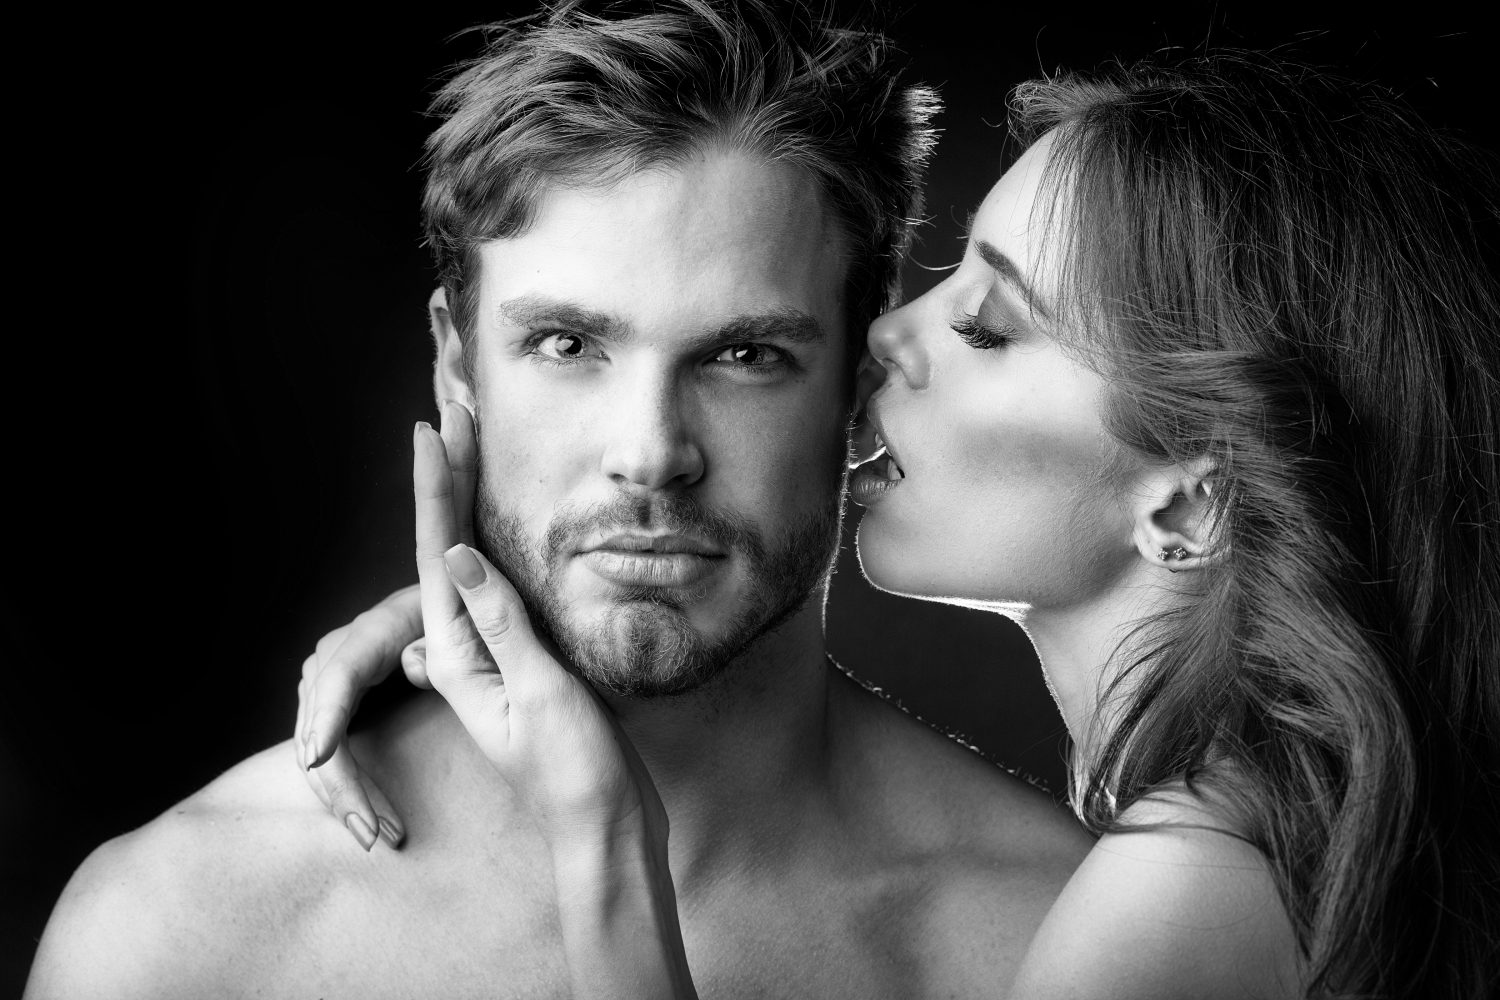 How To Talk Dirty: What to Do To Drive Your Partner Crazy